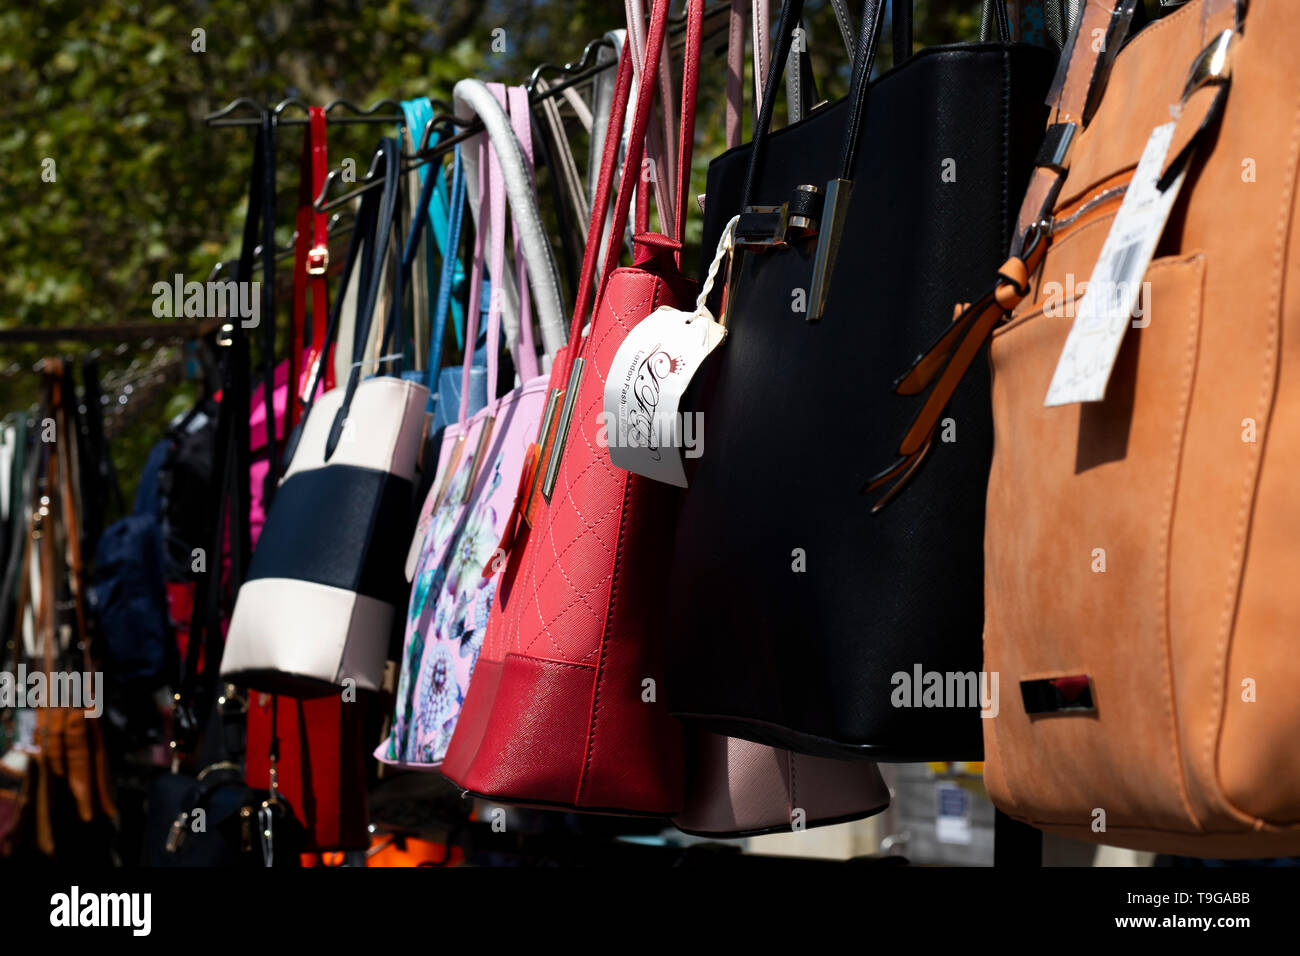 918853c0 Leather ladies handbags for sell on market stall Stock Photo ...